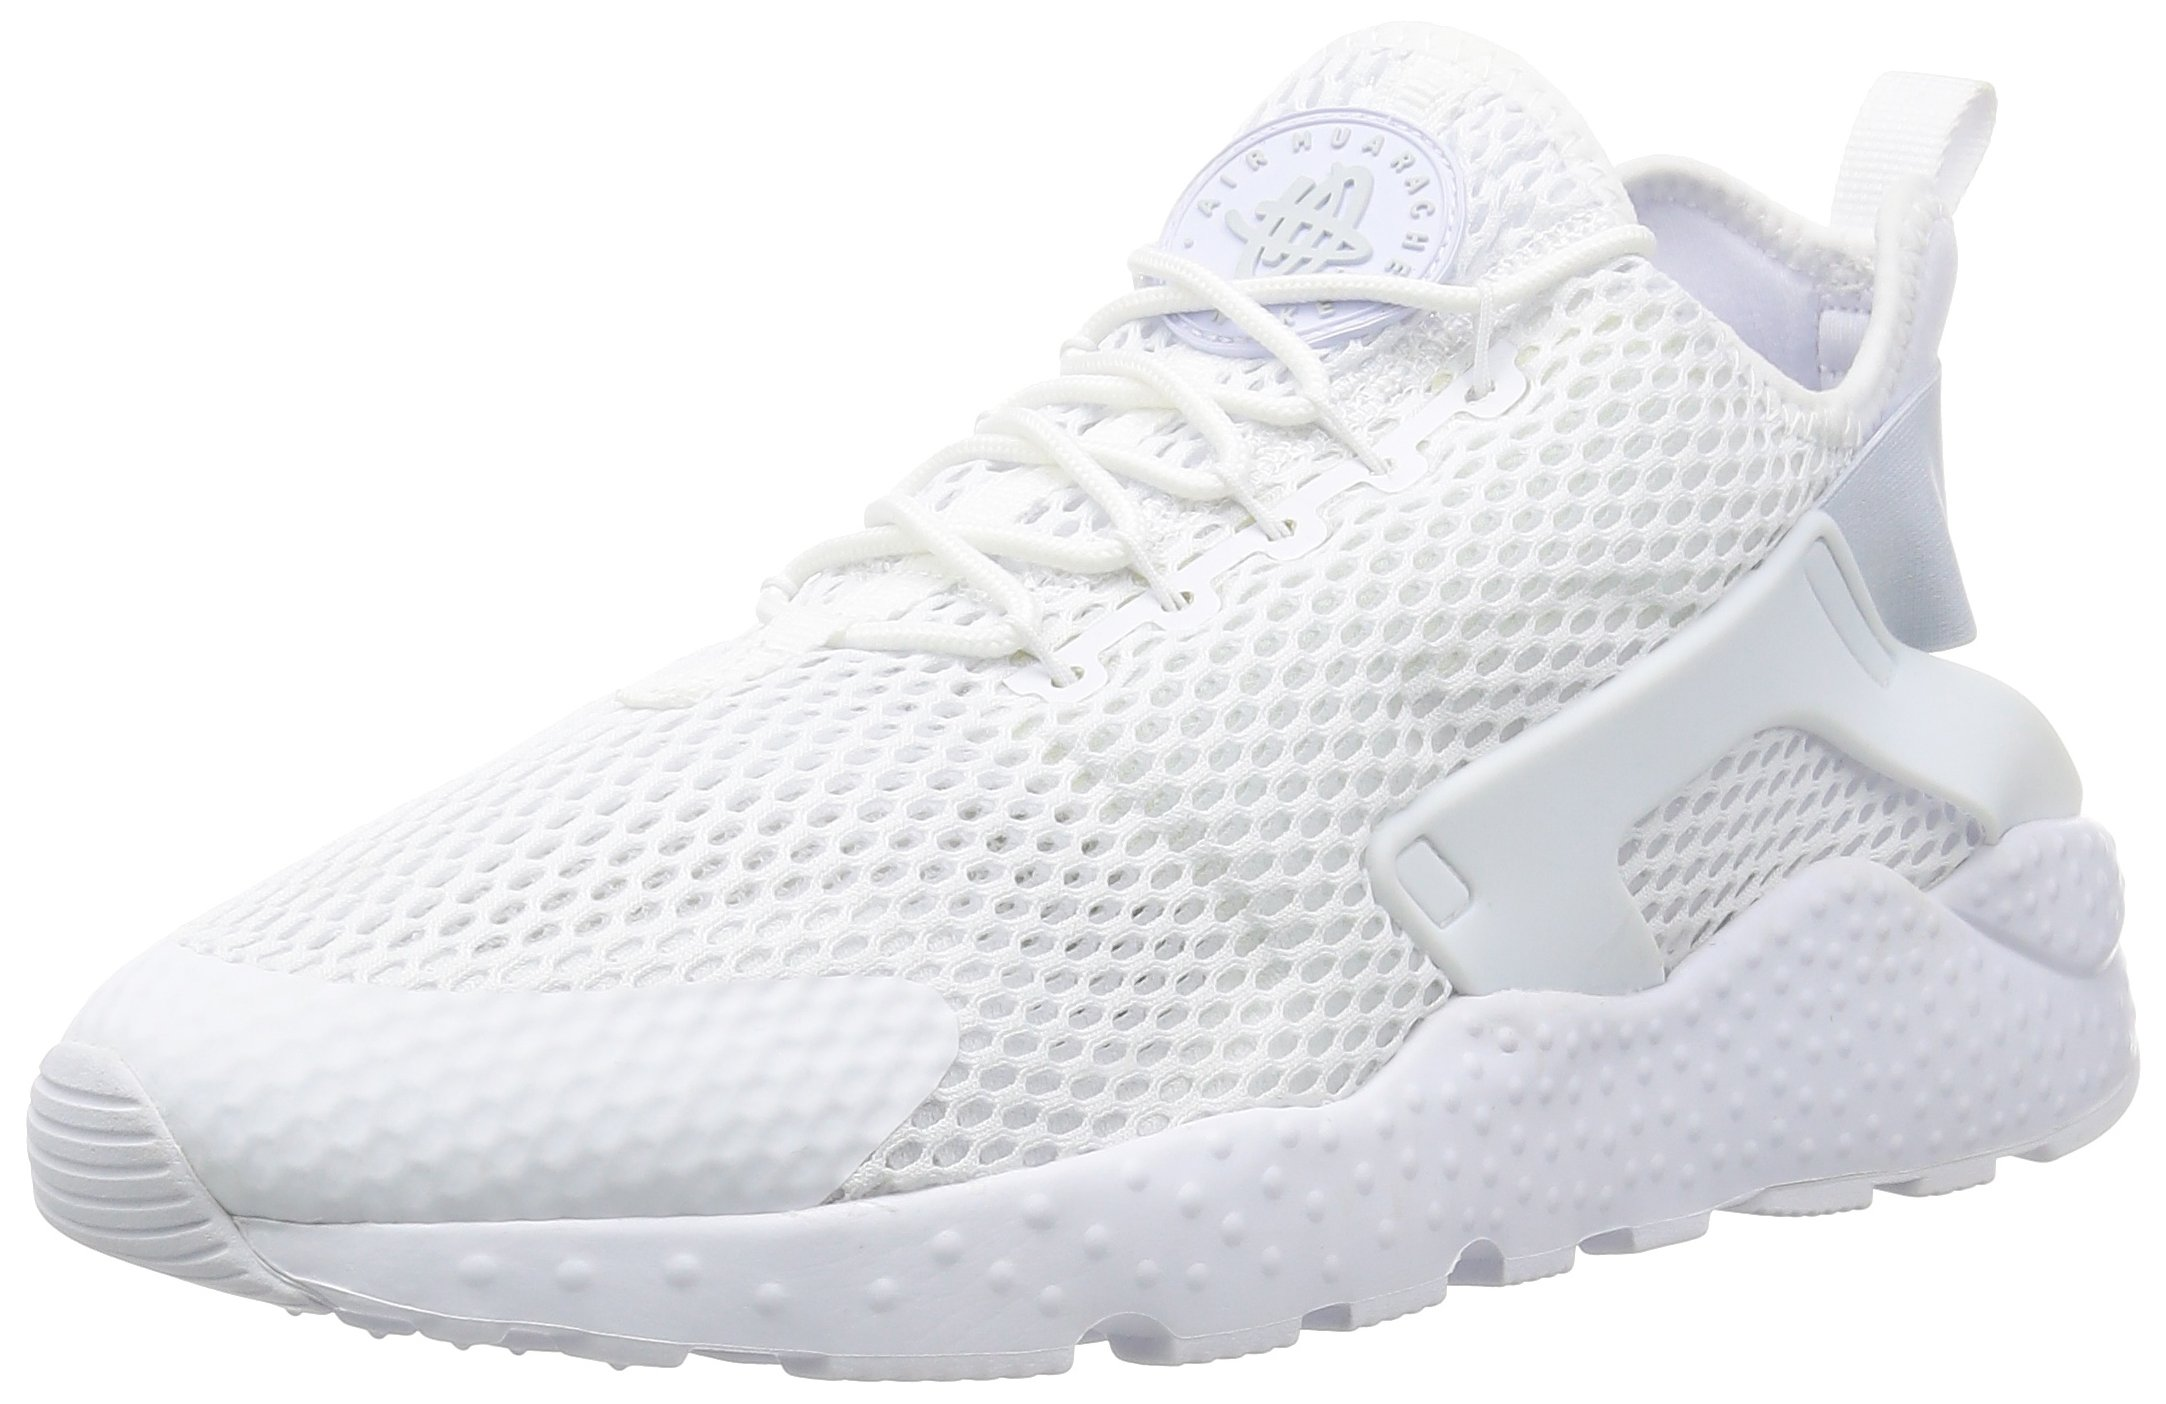 ba5cb77740f17 Galleon - Nike Womens Air Huarache Run Ultra Breathe White Mesh Trainers 8  US